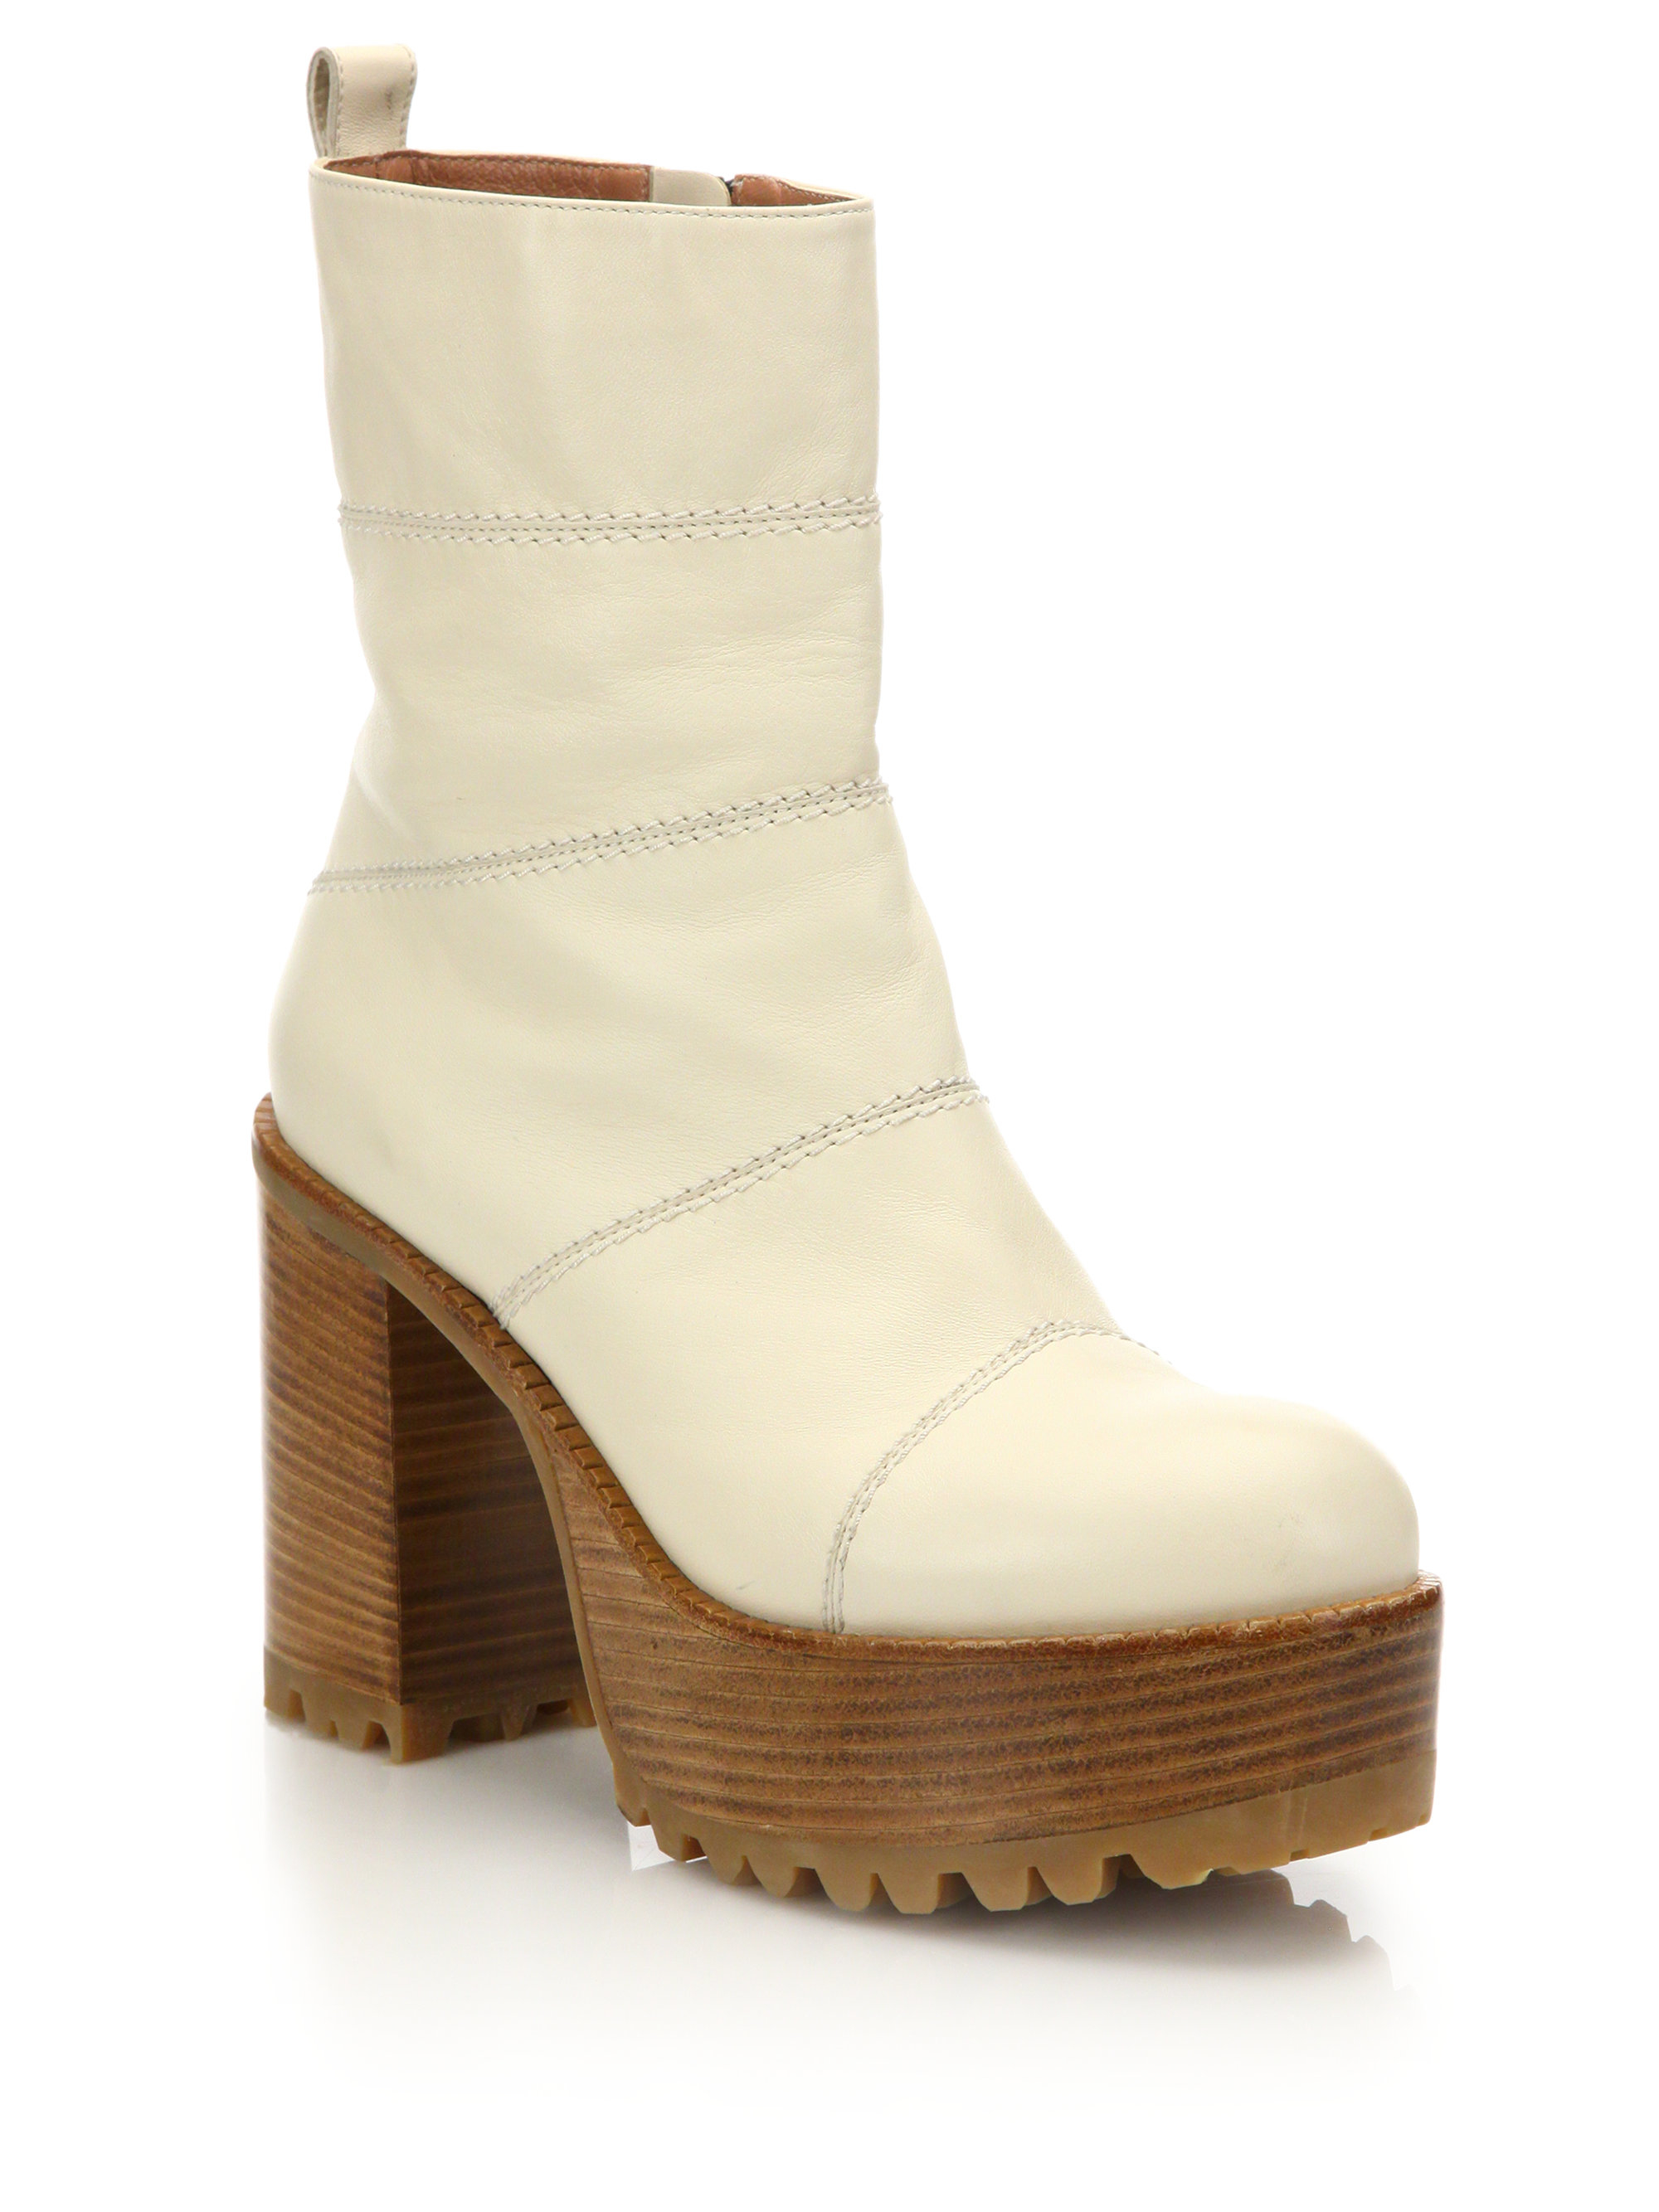 real sale online free shipping cost Marni Platform Leather Boots shopping discounts online classic online 49dk8IO